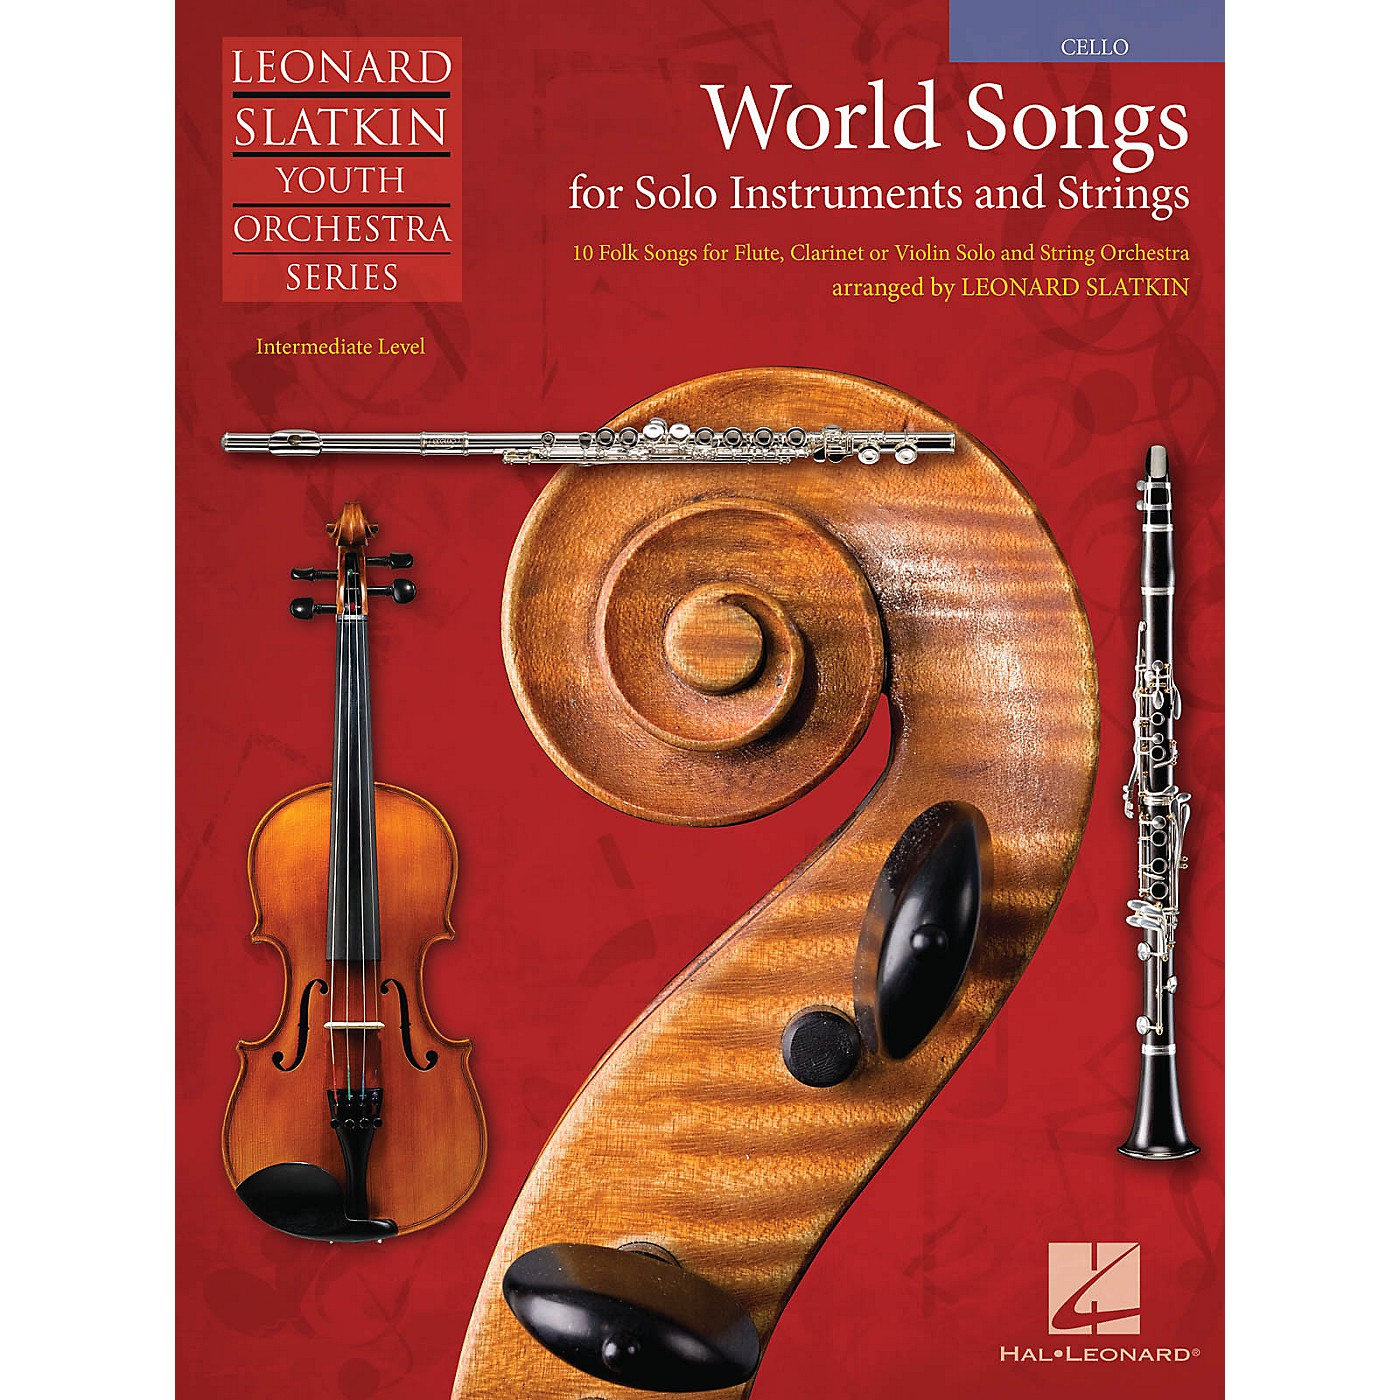 Hal Leonard World Songs for Solo Instruments and Strings Easy Music For Strings Series Softcover by Leonard Slatkin thumbnail